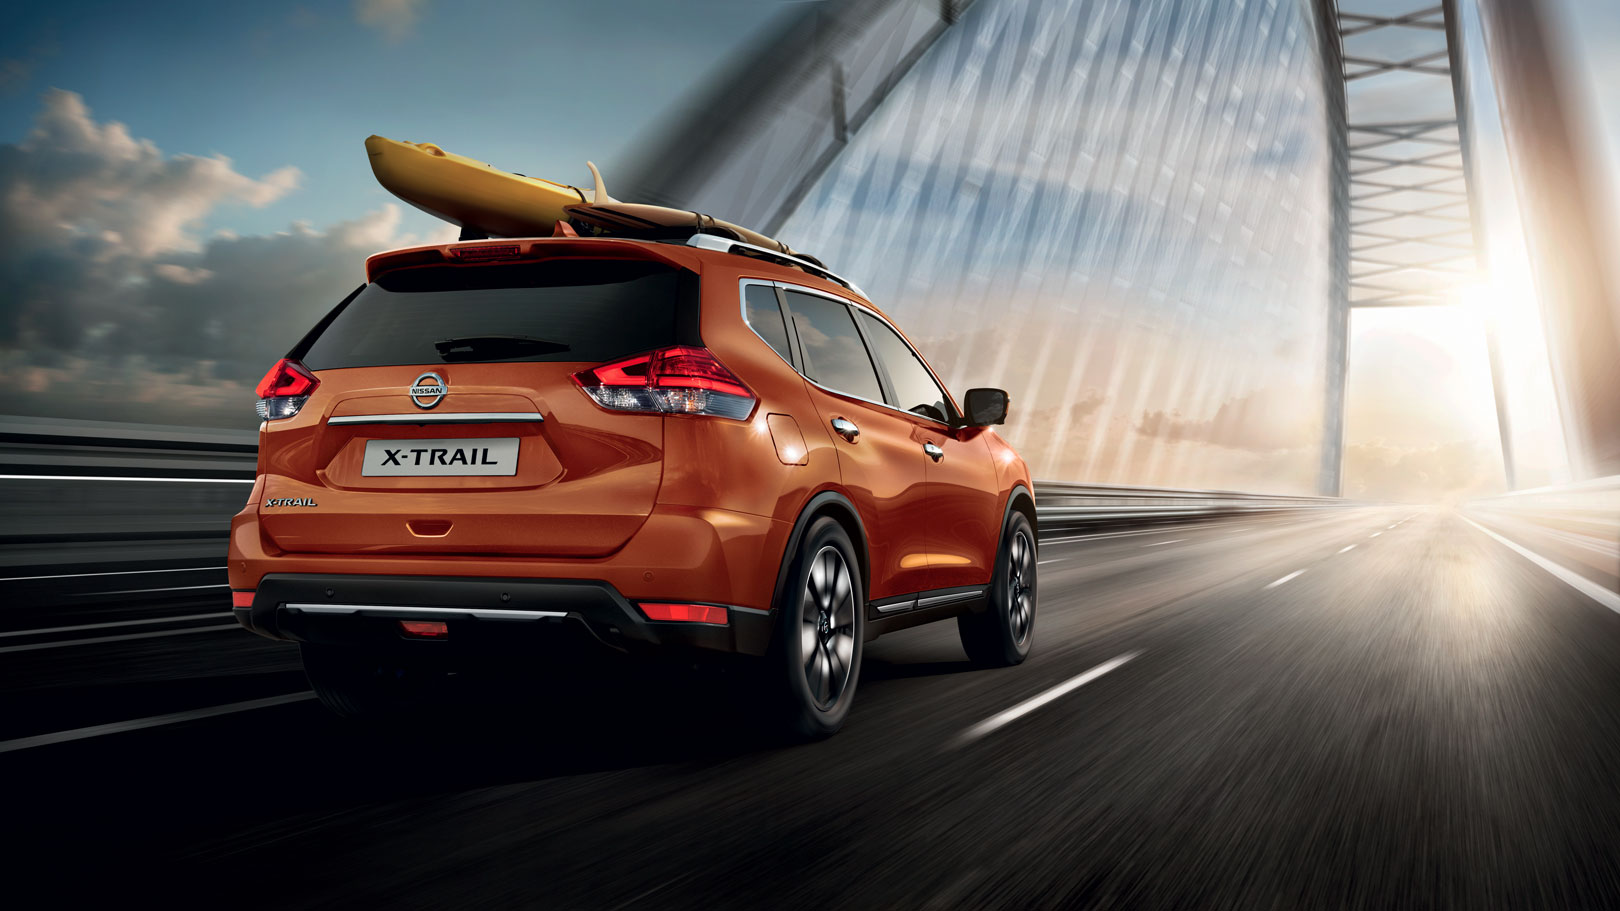 NISSAN X-TRAIL Le crossover 7 places